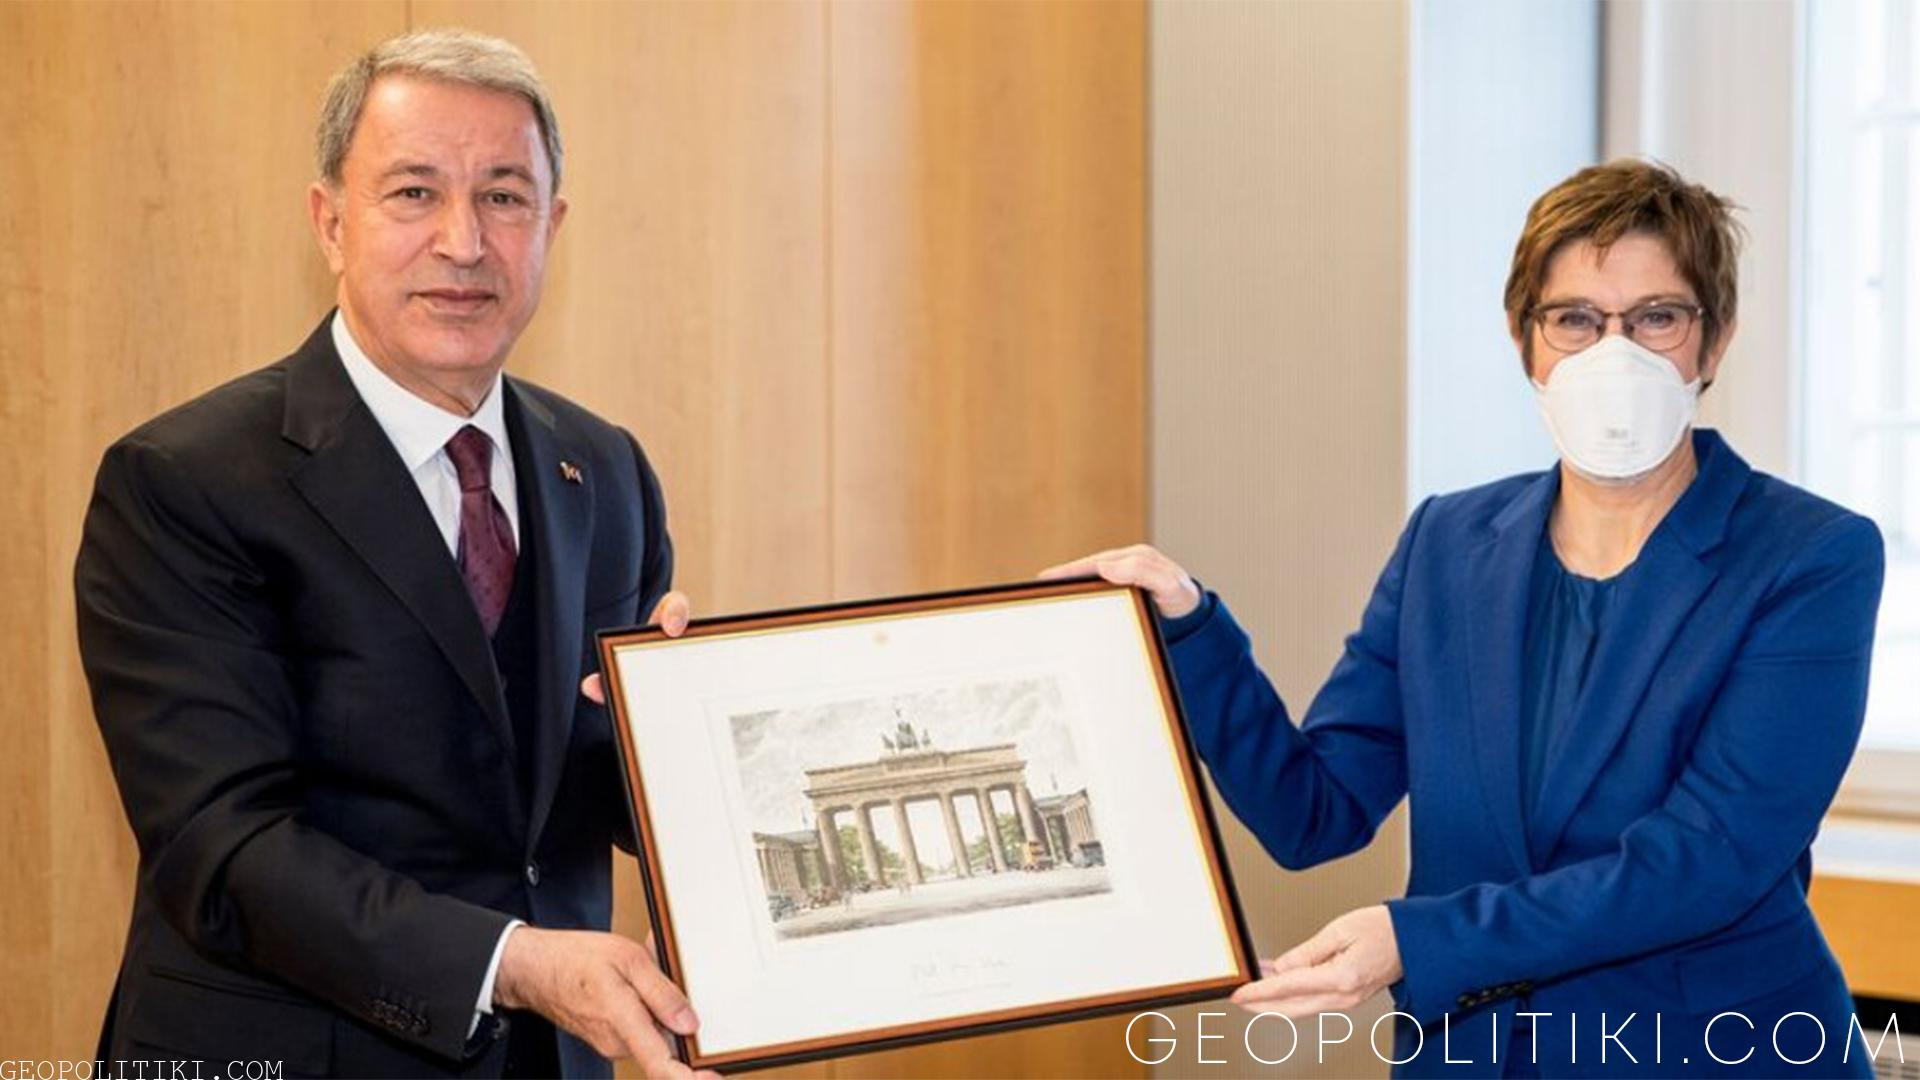 GERMAN-TURKISH ALLIANCE: Ministers' of defense meeting in Ankara for Altay Tanks